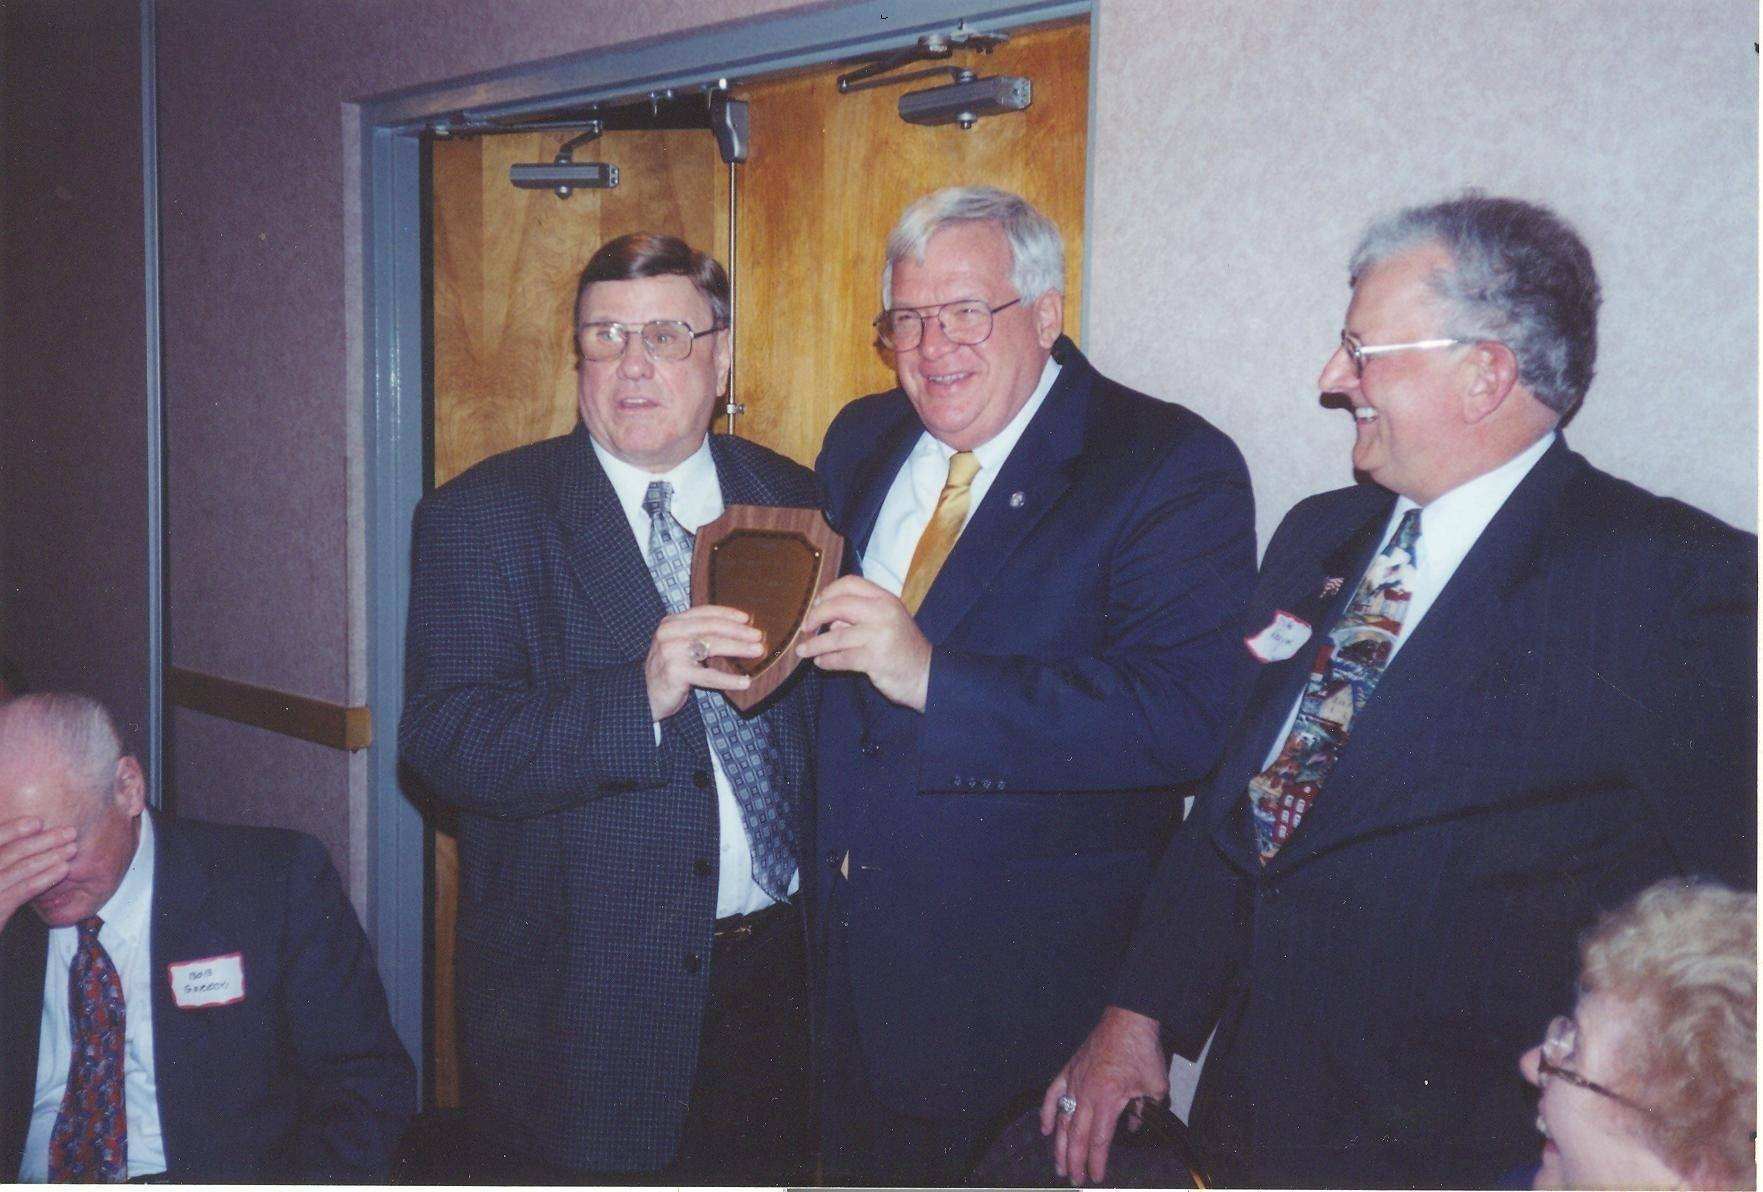 Retired Judge Donald T. Anderson, left, presents U.S. Rep. Dennis Hastert with a plaque at a John Ericsson Republican League gathering.